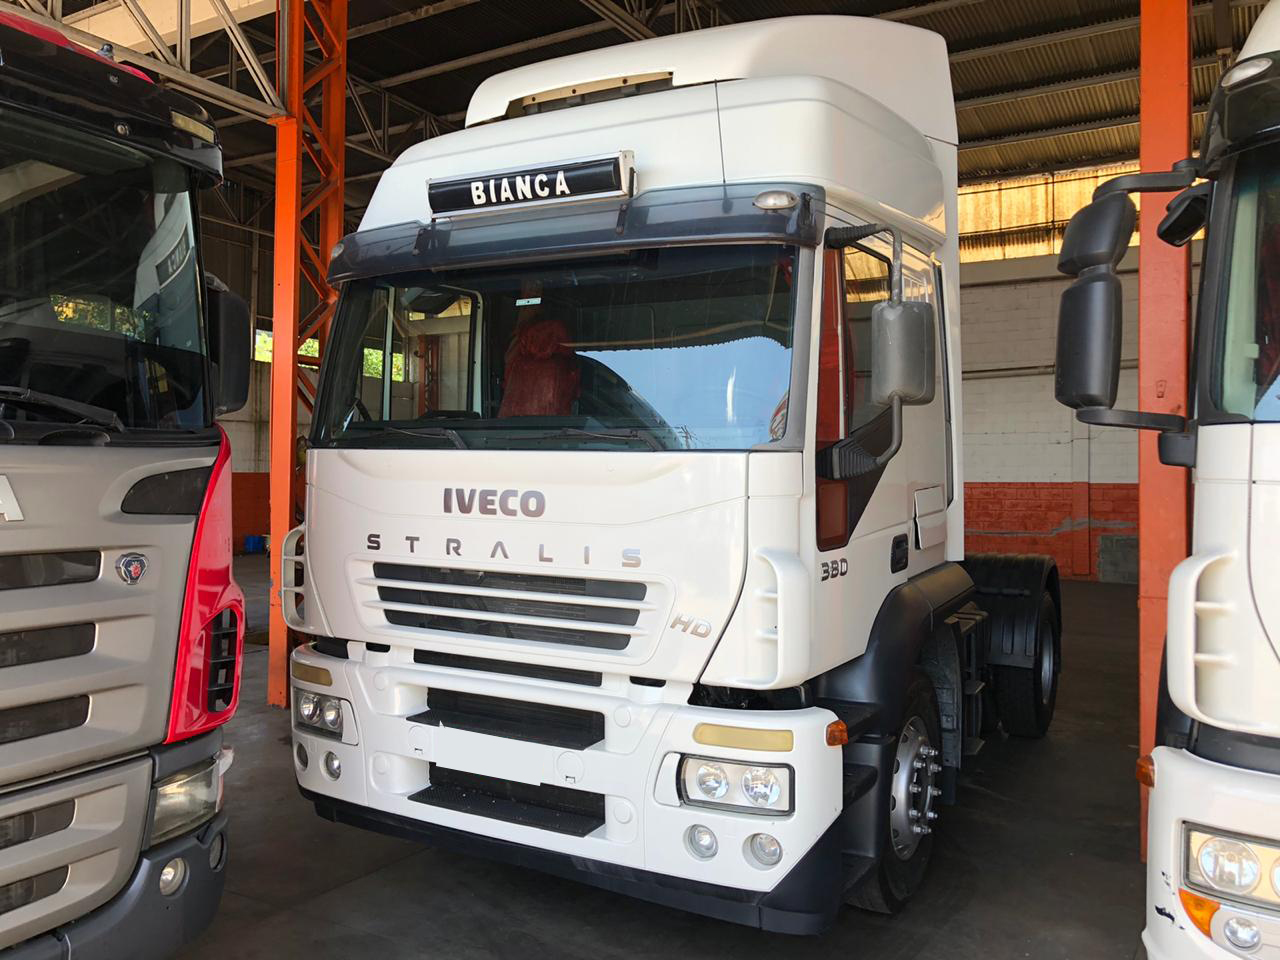 IVECO STRALIS 380 HD 4X2 2007